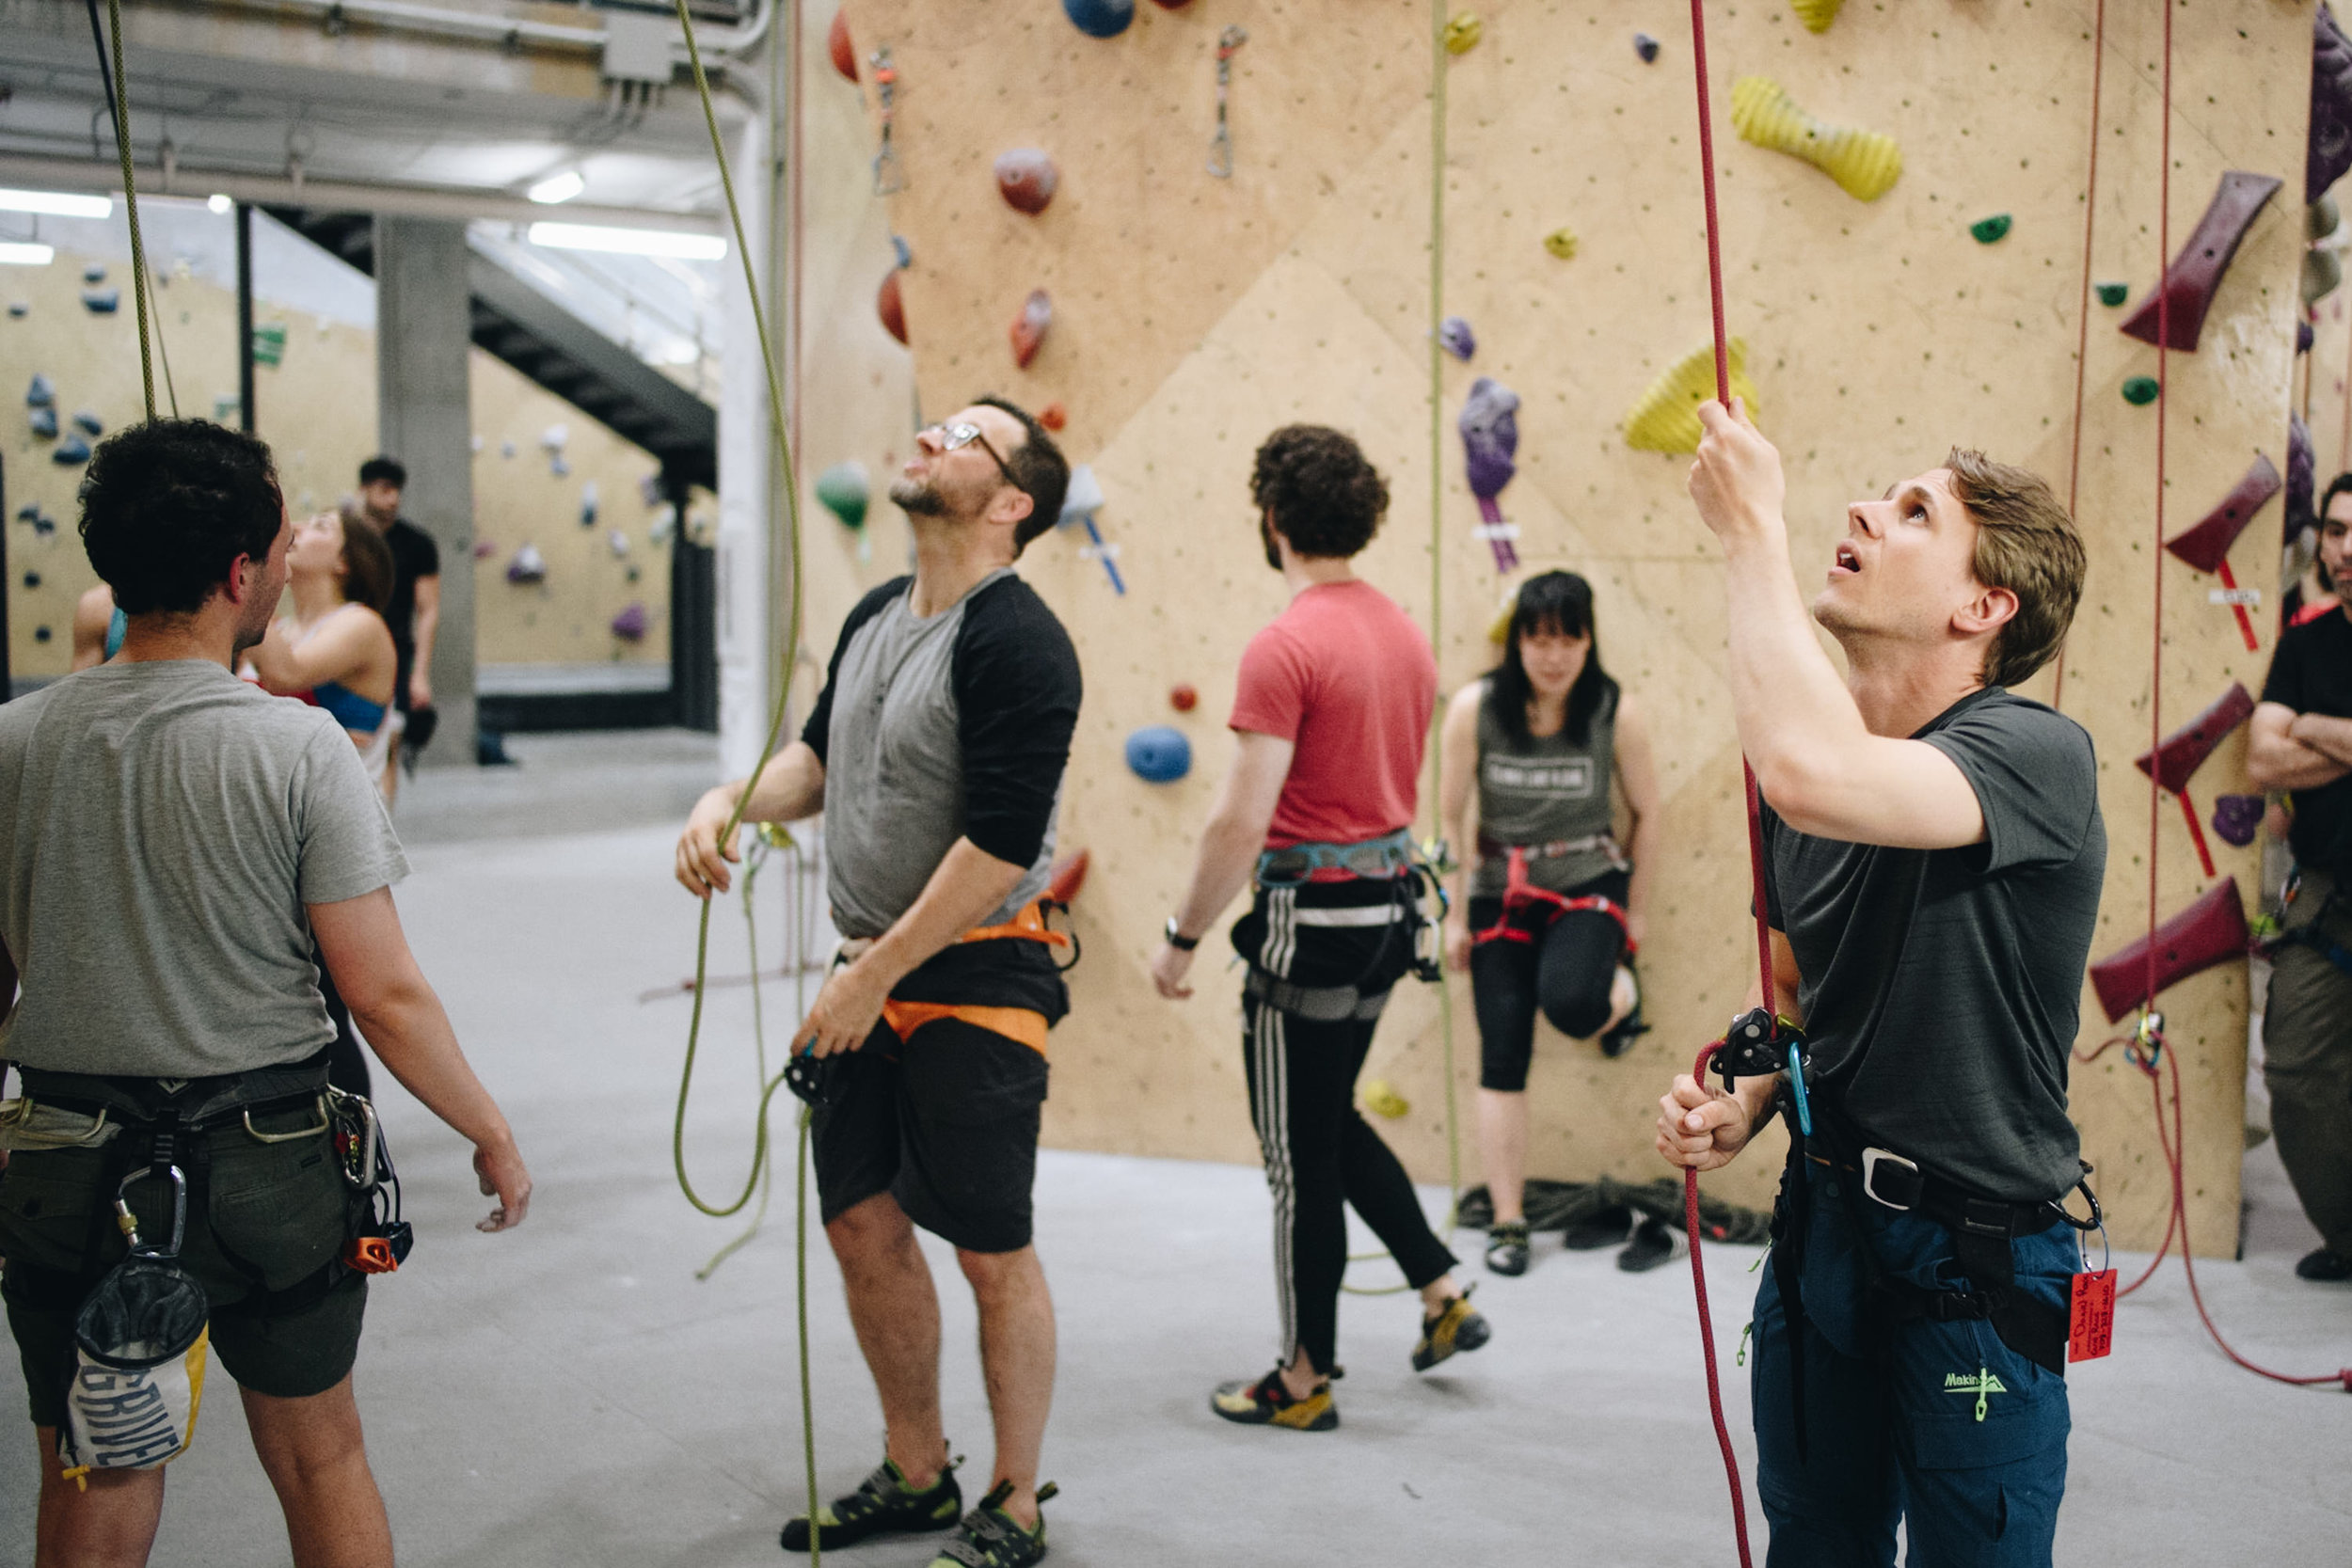 Members of the  NYC Indoor Rock Climbing Newbies!  group take turns climbing and spotting.